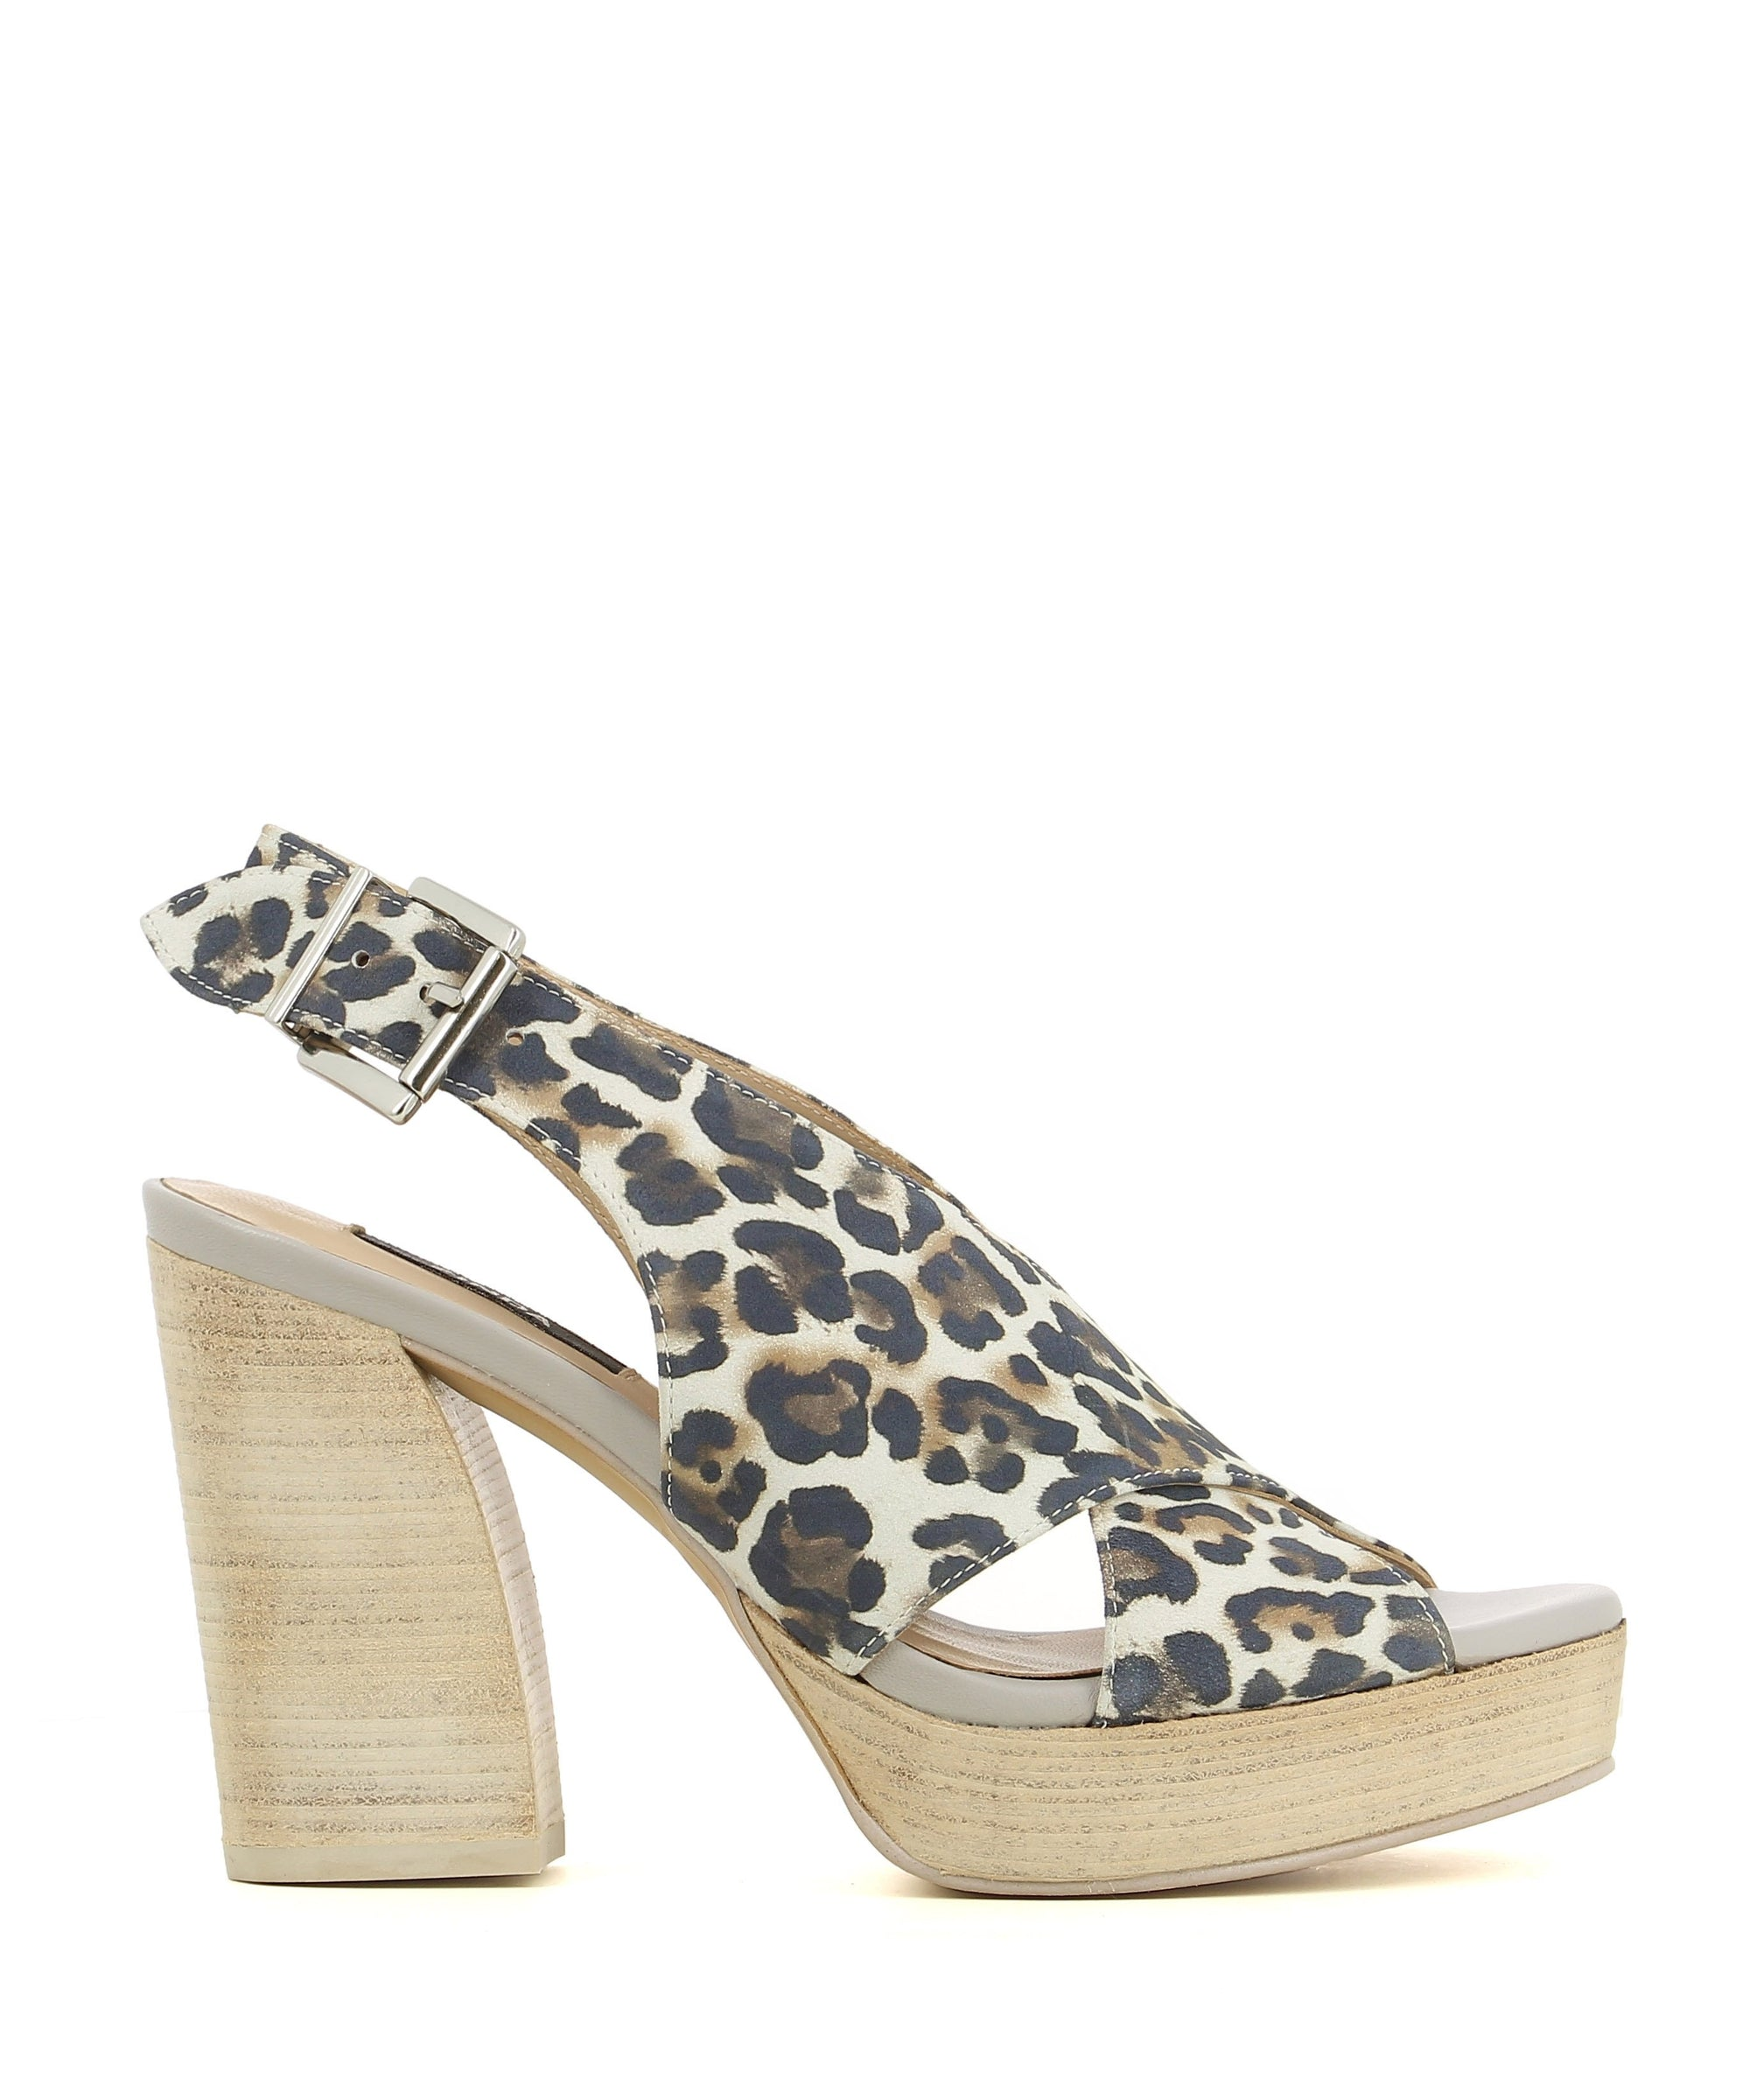 Statement leather platforms featuring a silver buckle fastening, a printed leopard print upper, a wooden platform heel and a soft almond toe by Zinda.